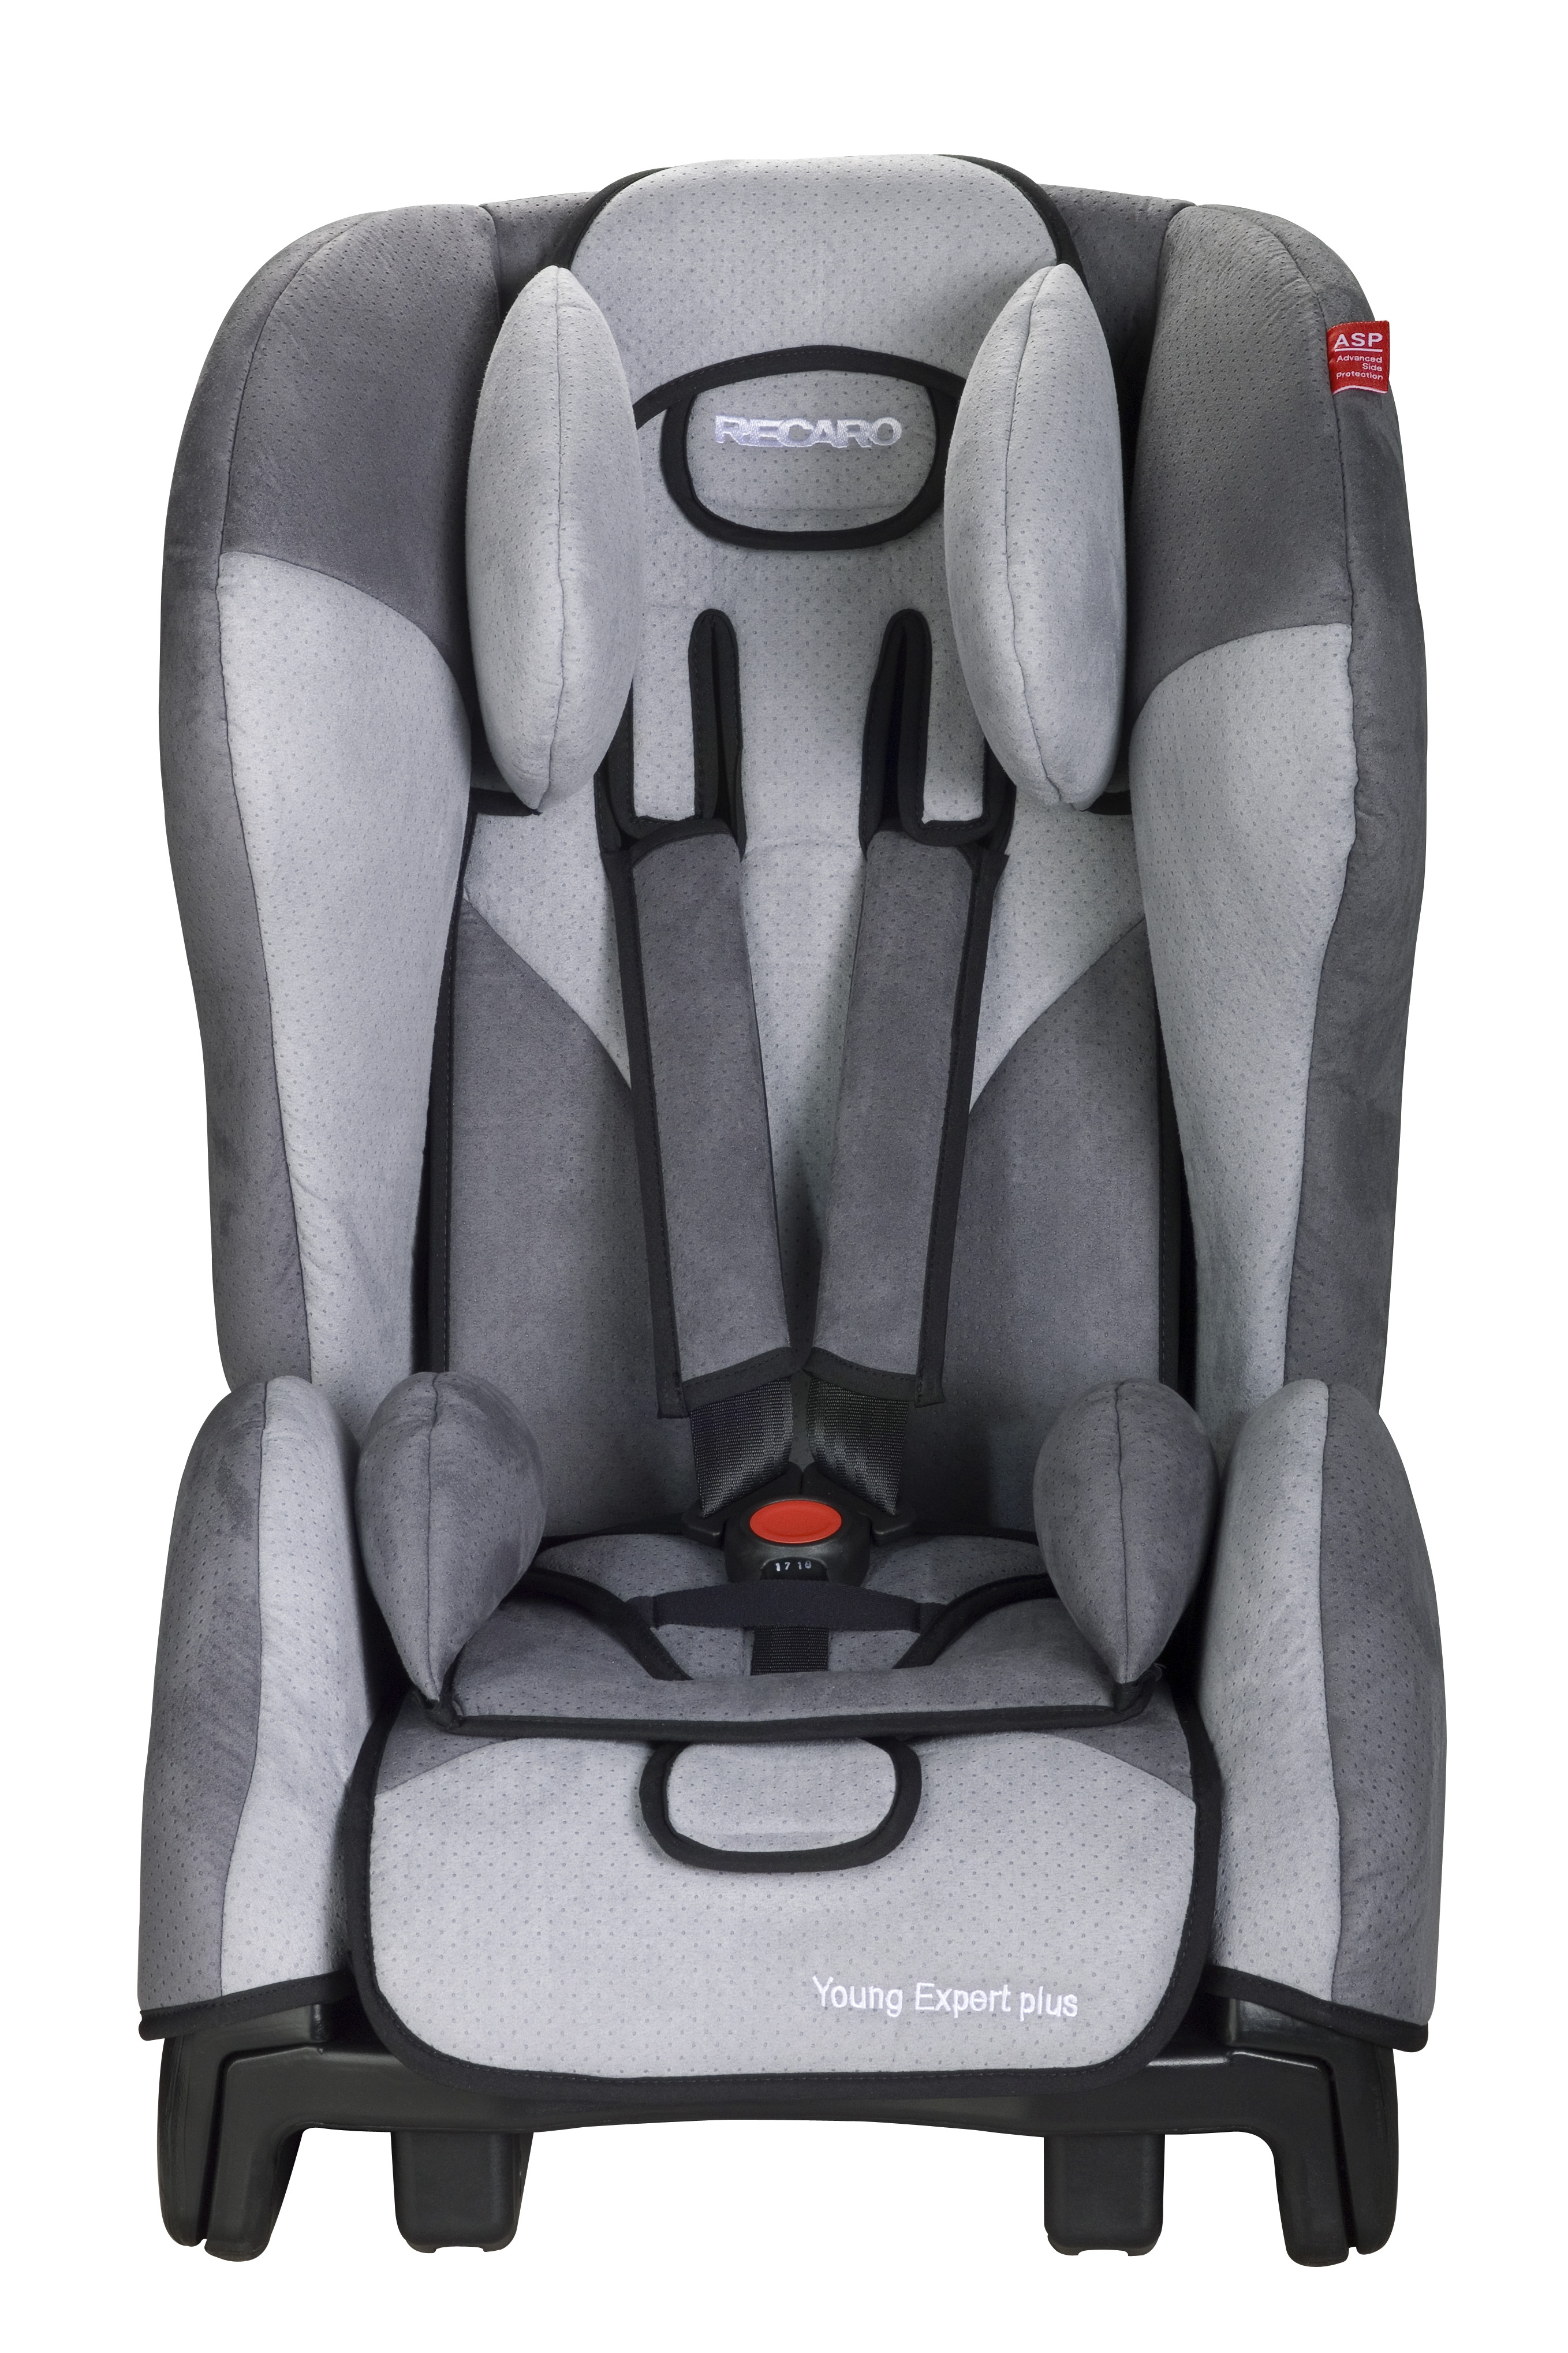 Recaro Young Expert  Plus Child Seat Group 1 [Bellini Grey]